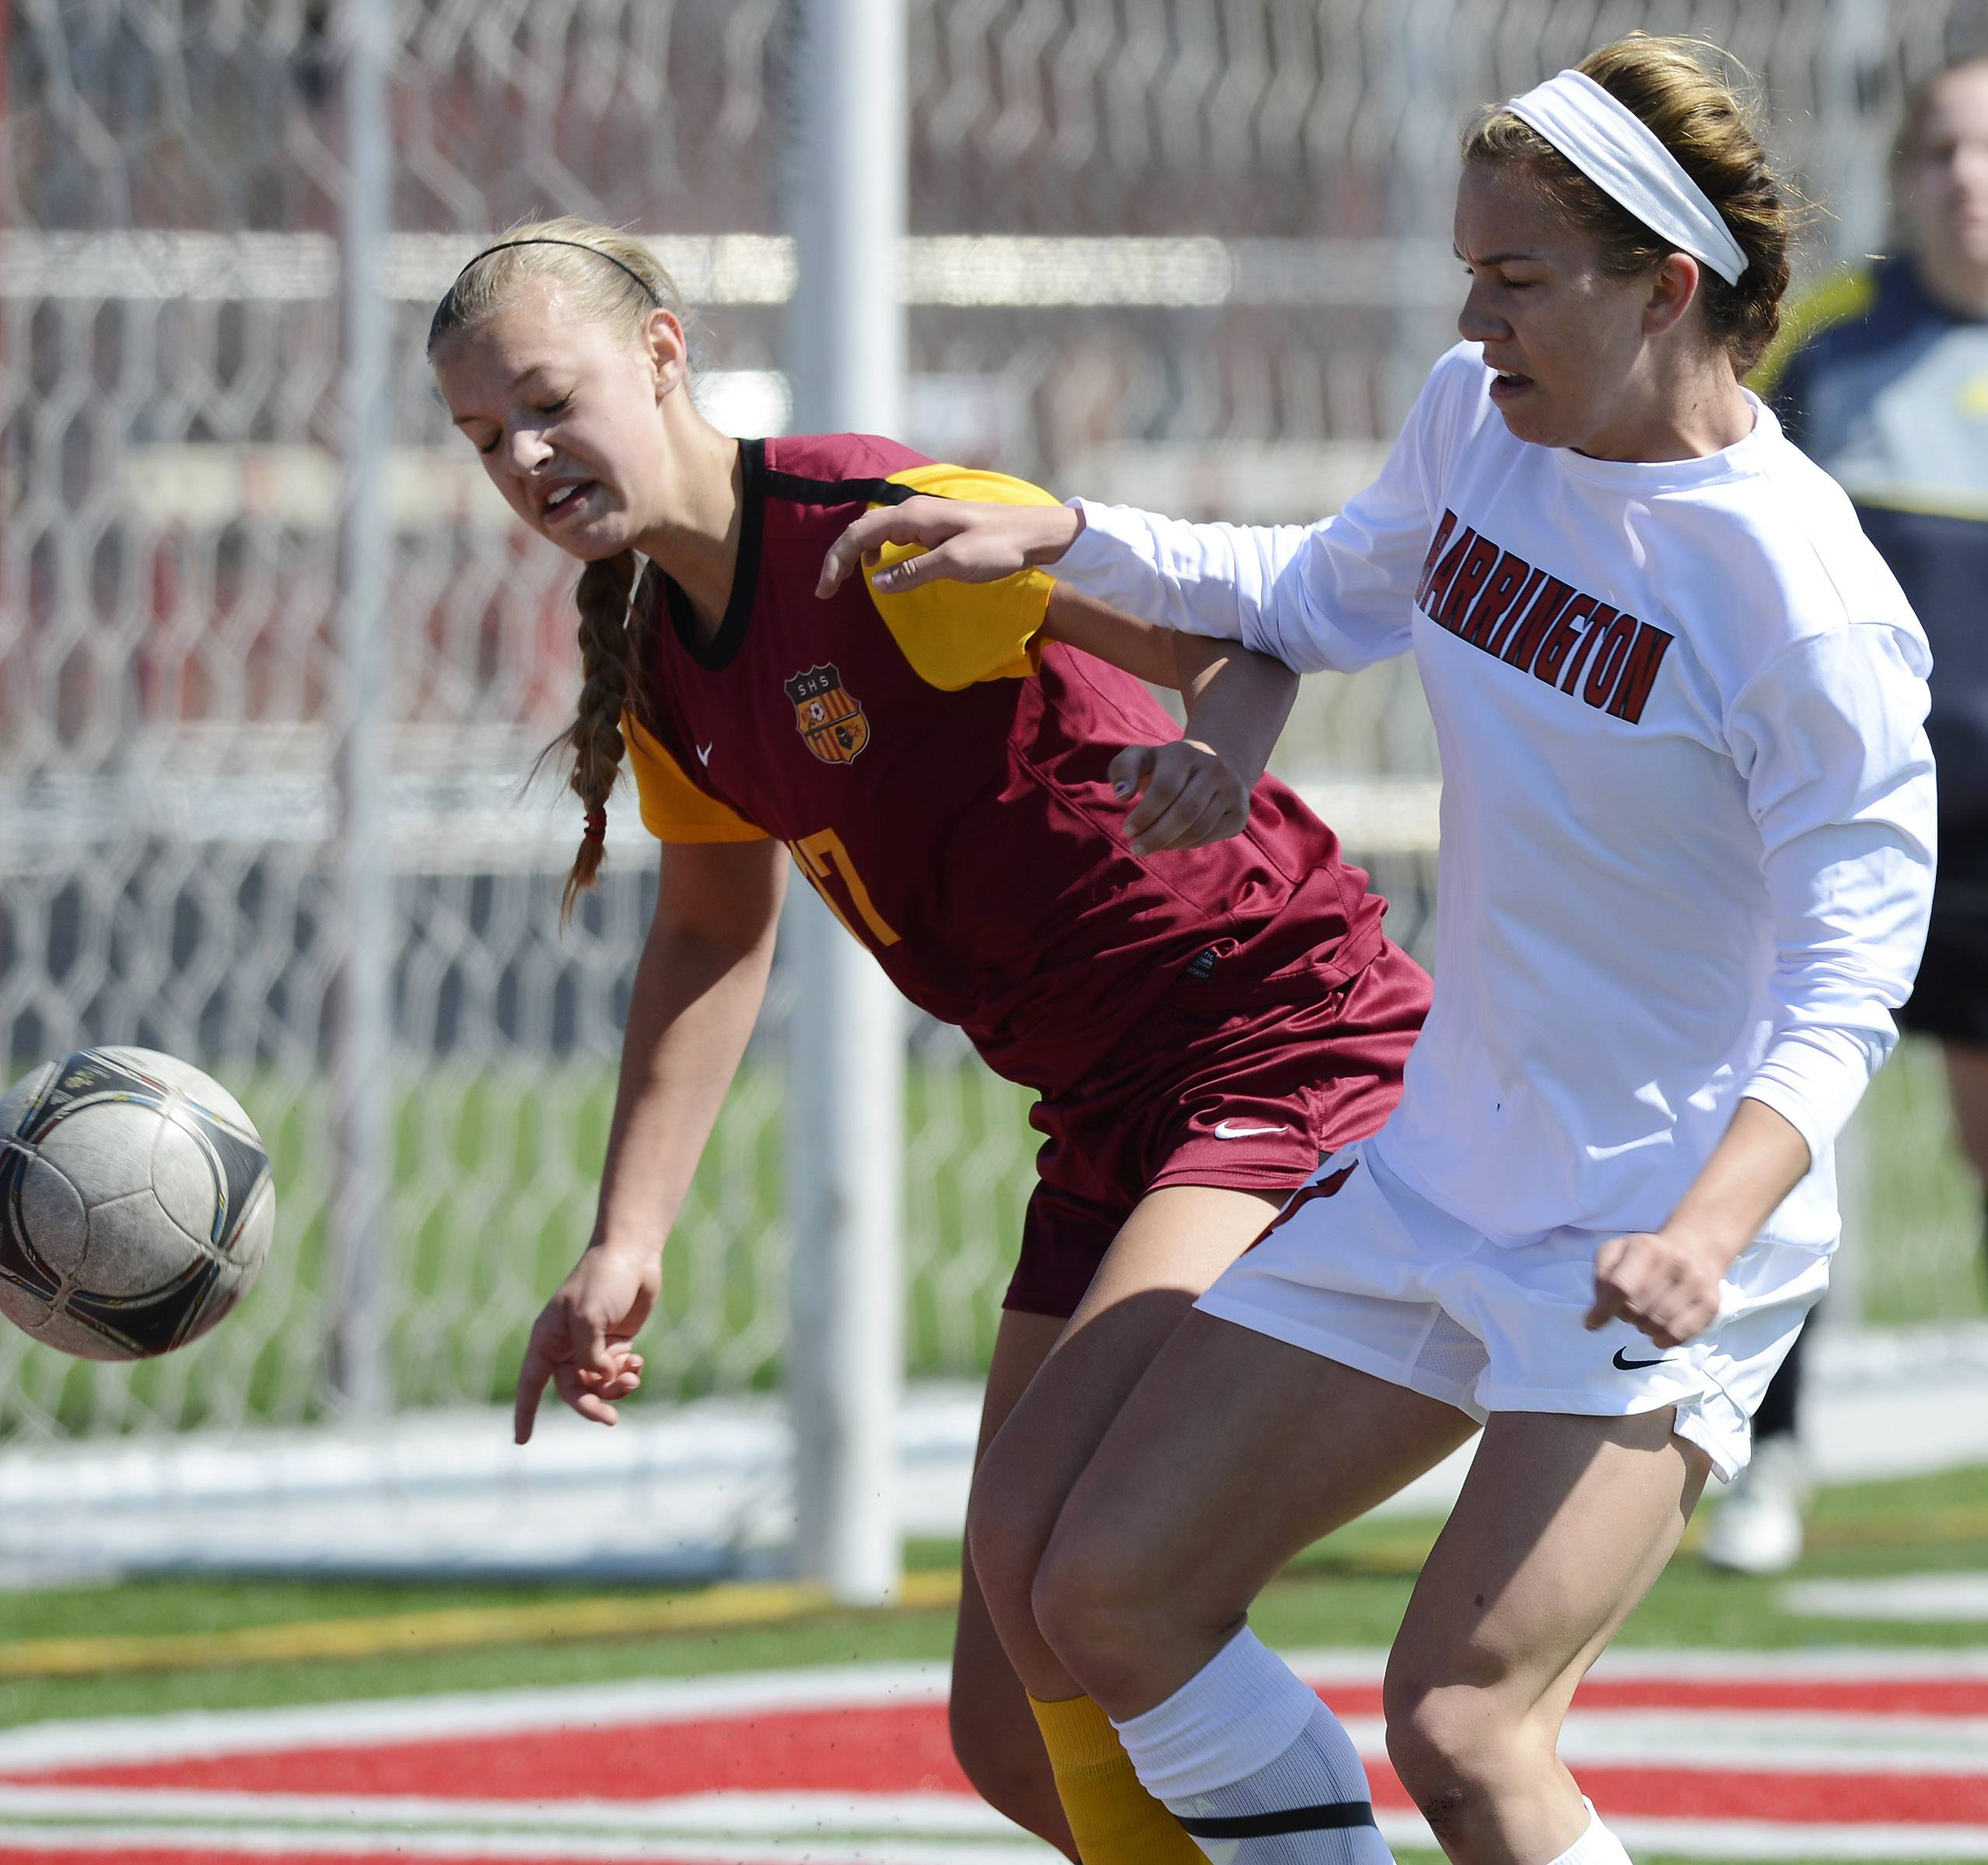 Schaumburg's Brittany Reinhart, left, and Barrington's Jenna Szczesny make contact as they pursue the ball during Saturday's game at Barrington.